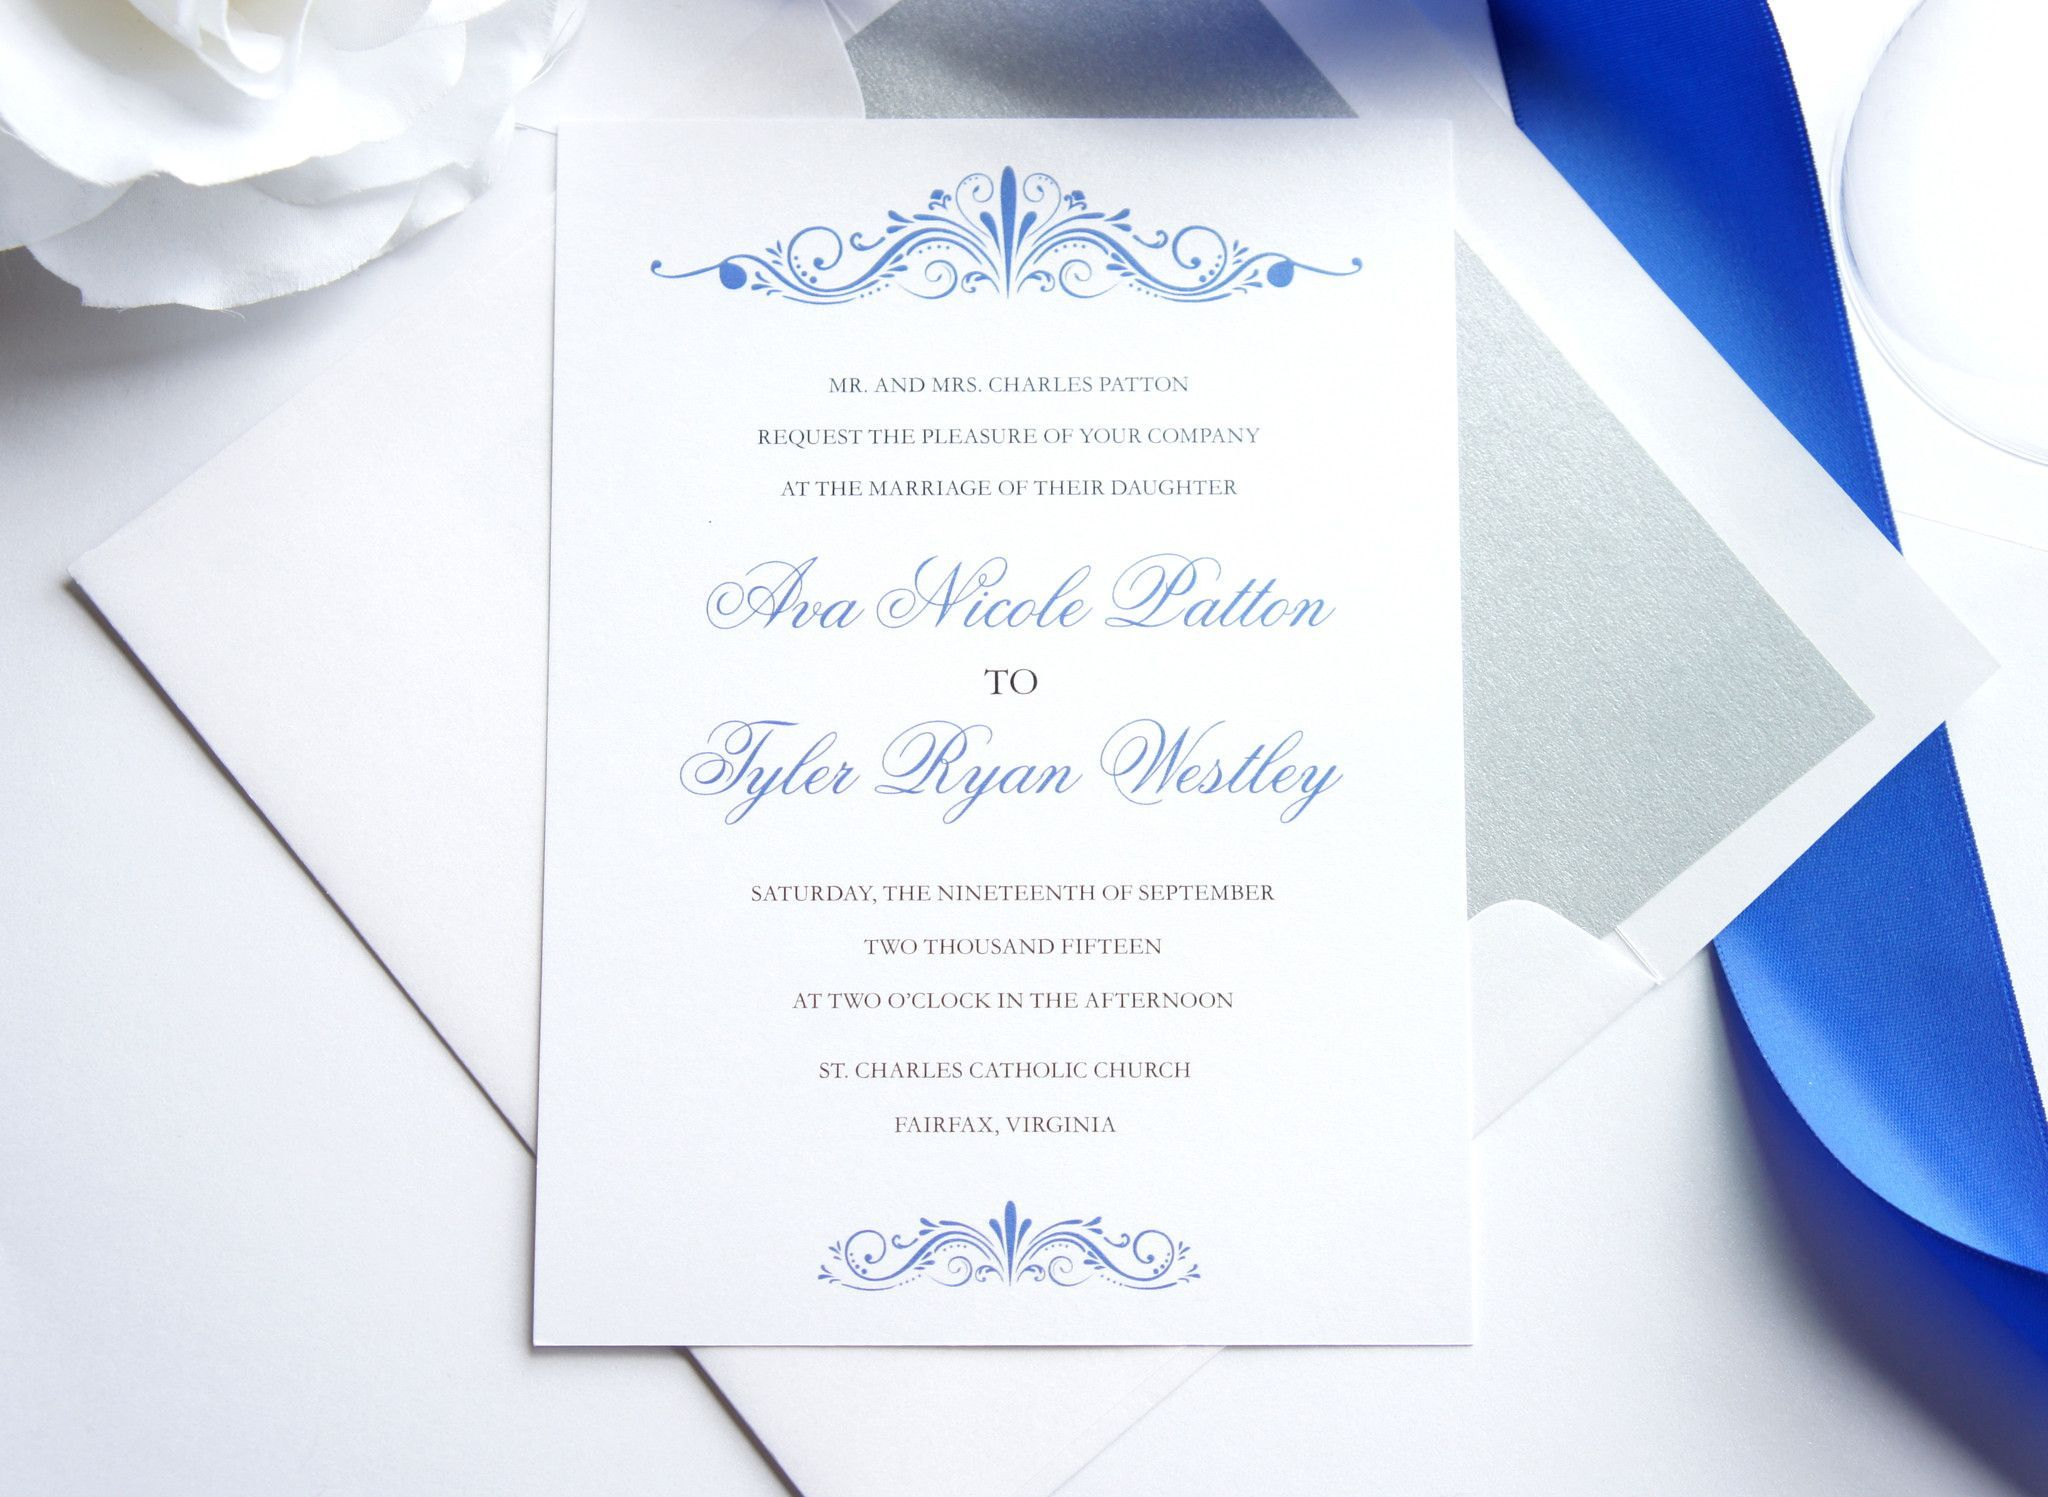 Blue Wedding Invitation Elegant Simple Classic Formal Royal Invites Sle Set: Royal Blue Wedding Invitation Set At Websimilar.org